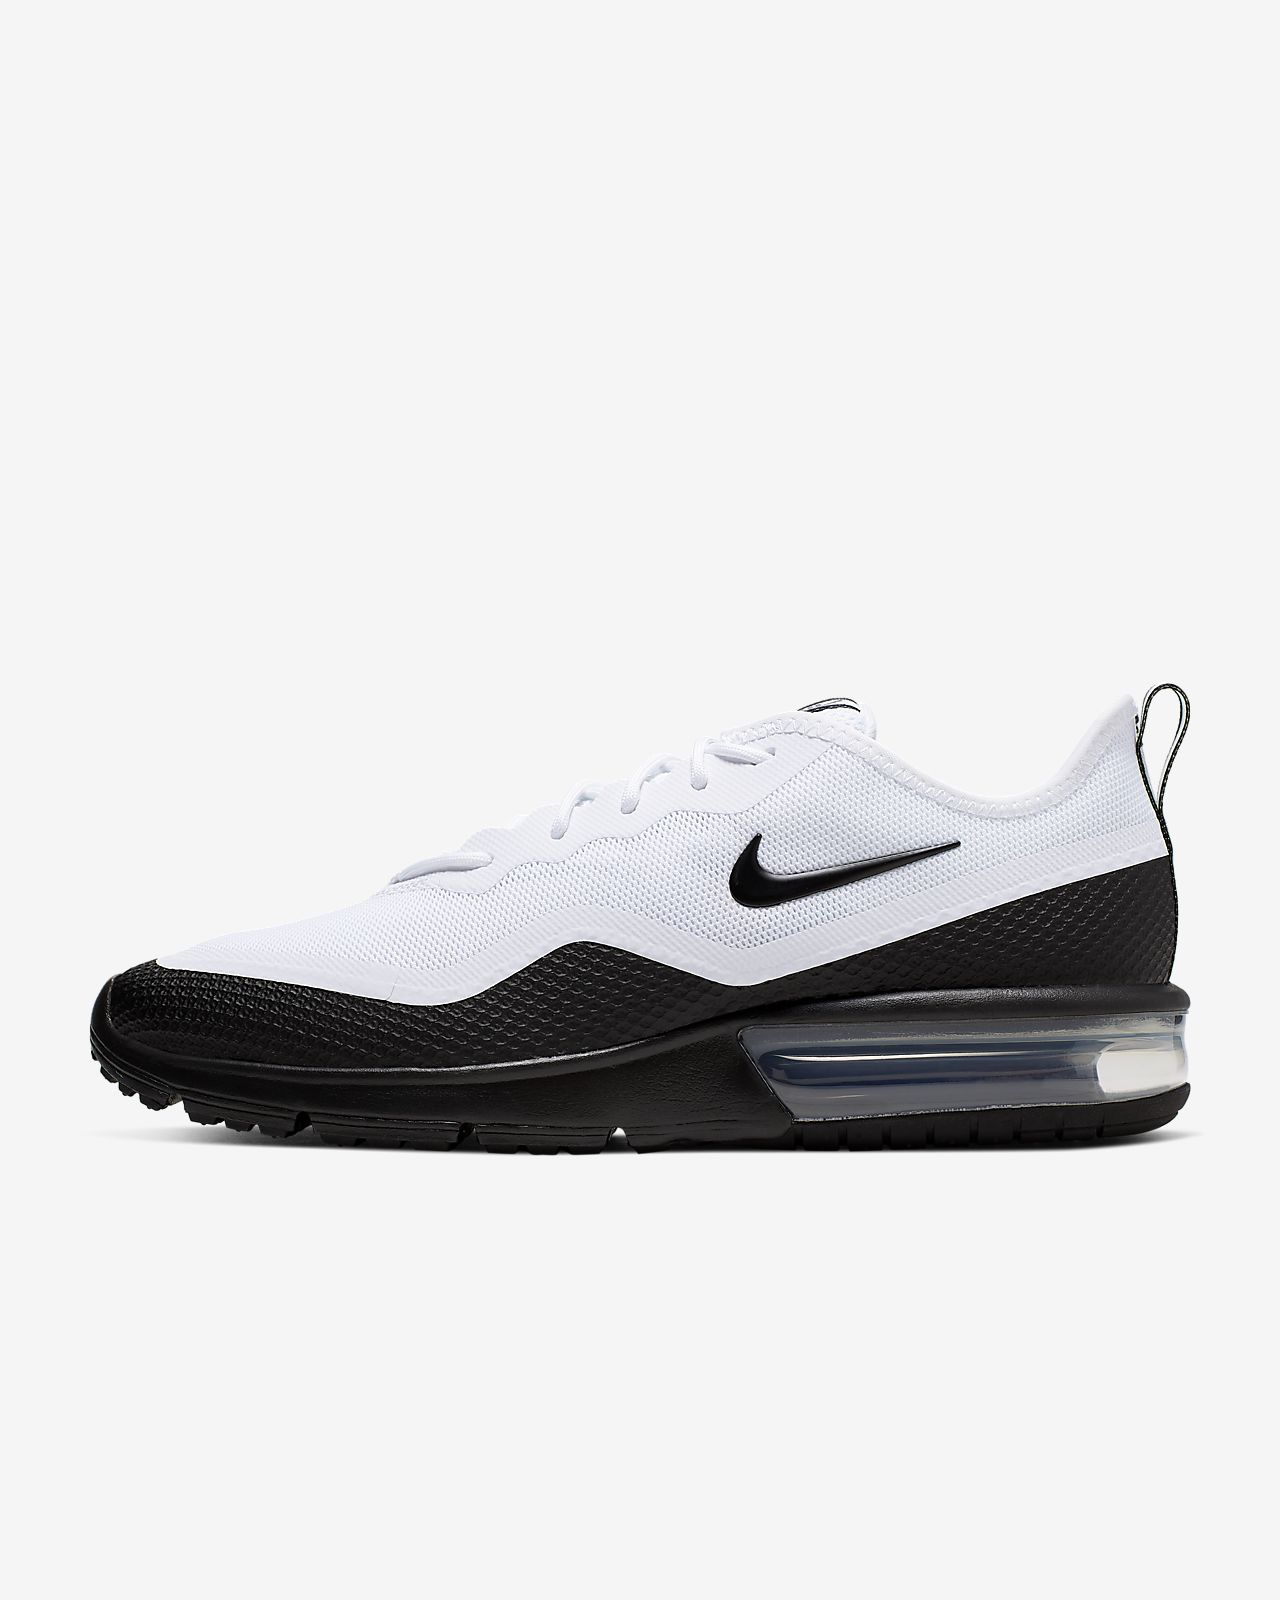 Nike Herren Air Max Sequent 2 42.5 (BlackWhite dark Grey